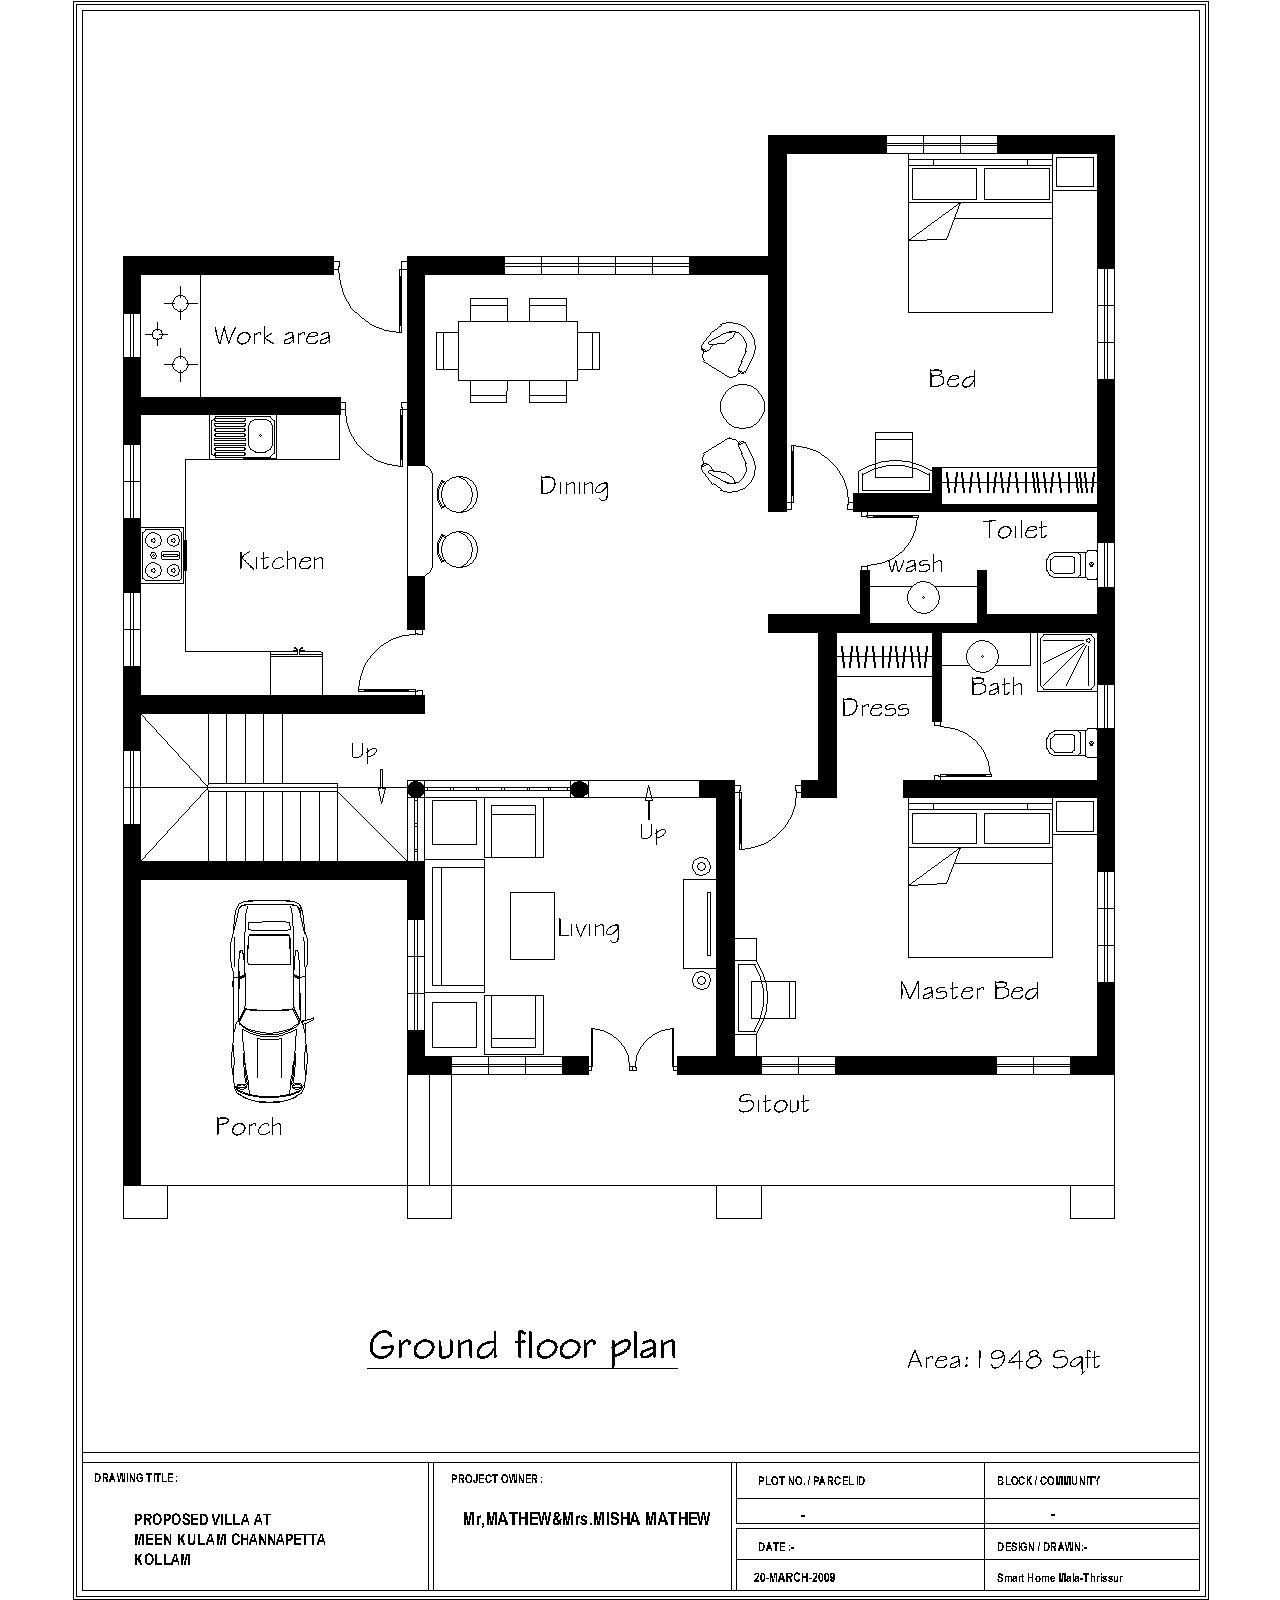 Bedroom floor plans bedroom furniture high resolution - Bed room plan ...